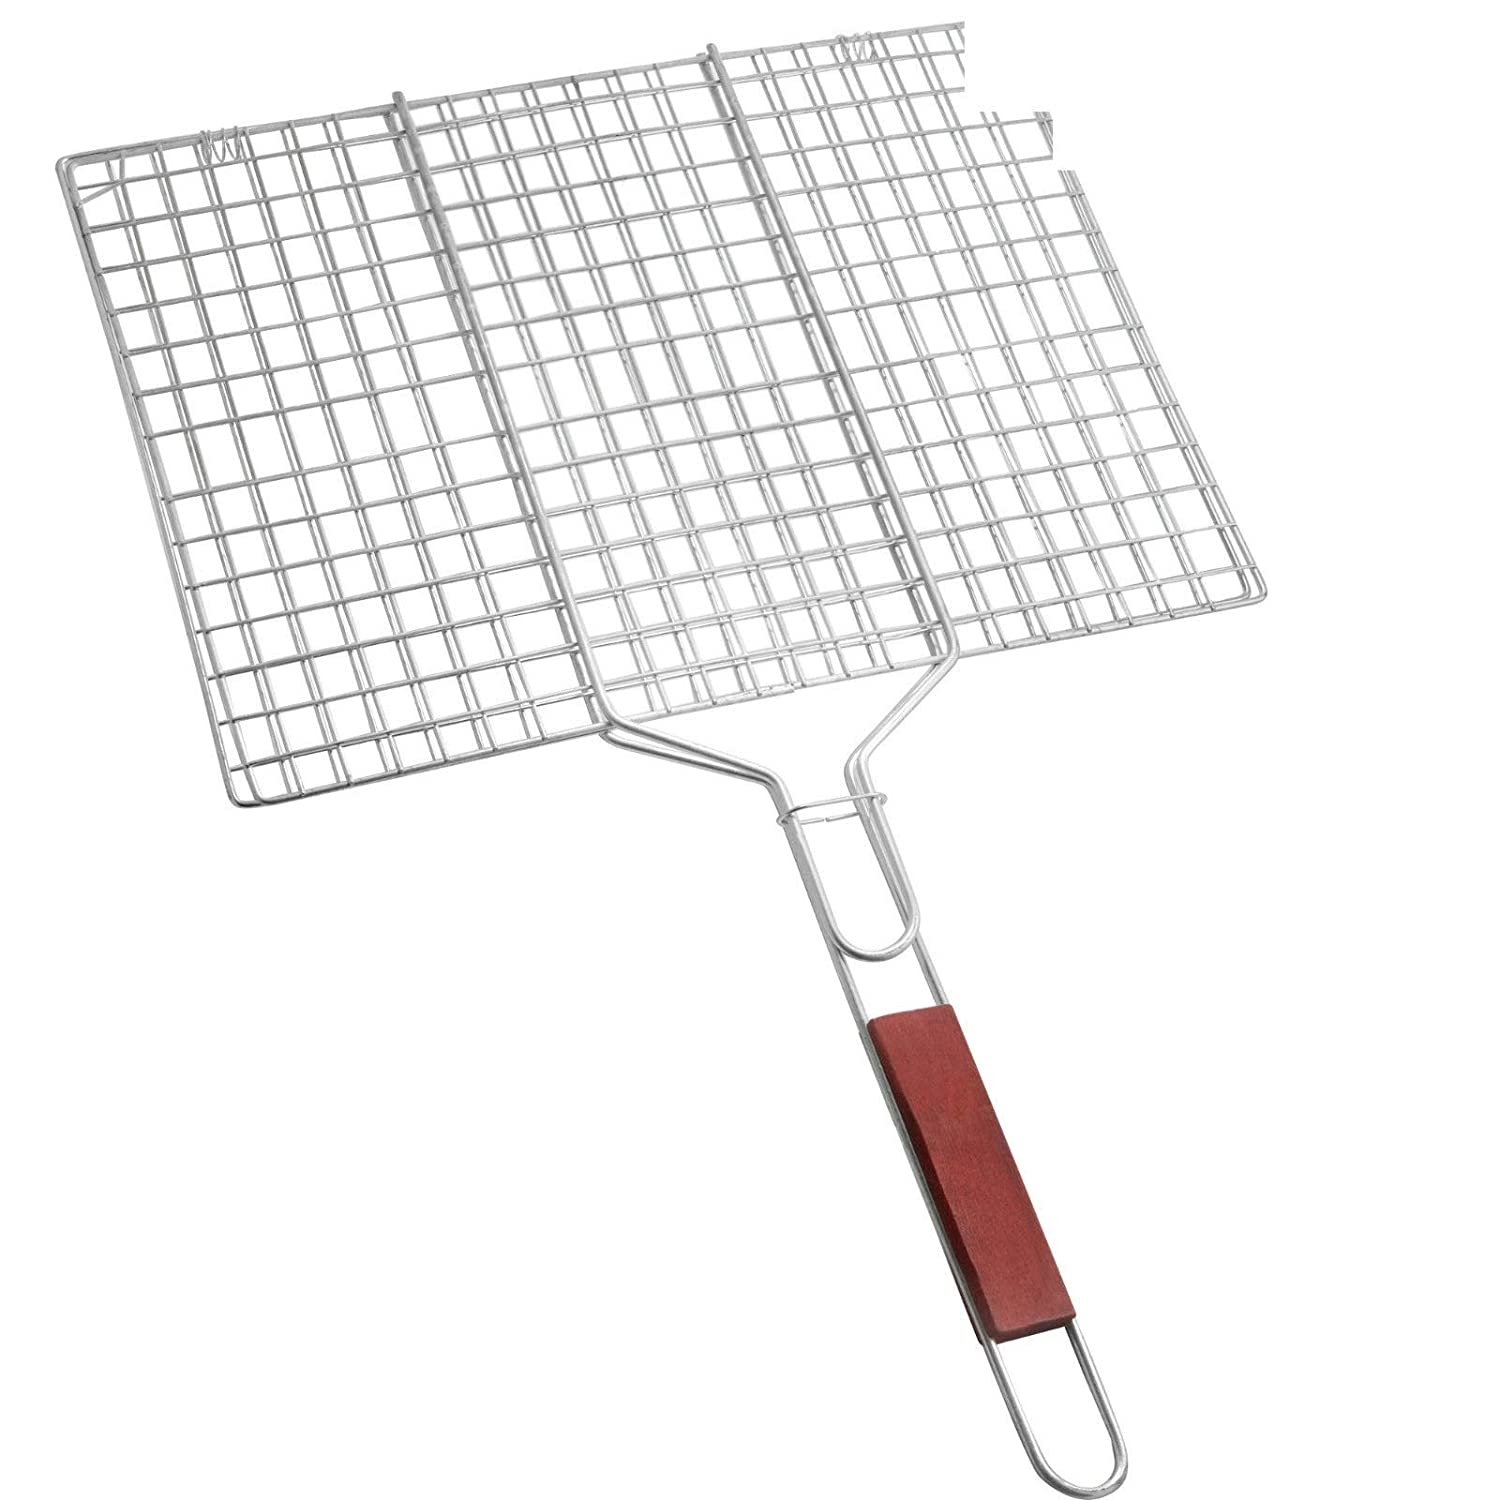 SI BBQ MEAT BURGER FISH LONG HANDLE GRILL RACK EXTRA LARGE BASKET FOLDING STAND MESH